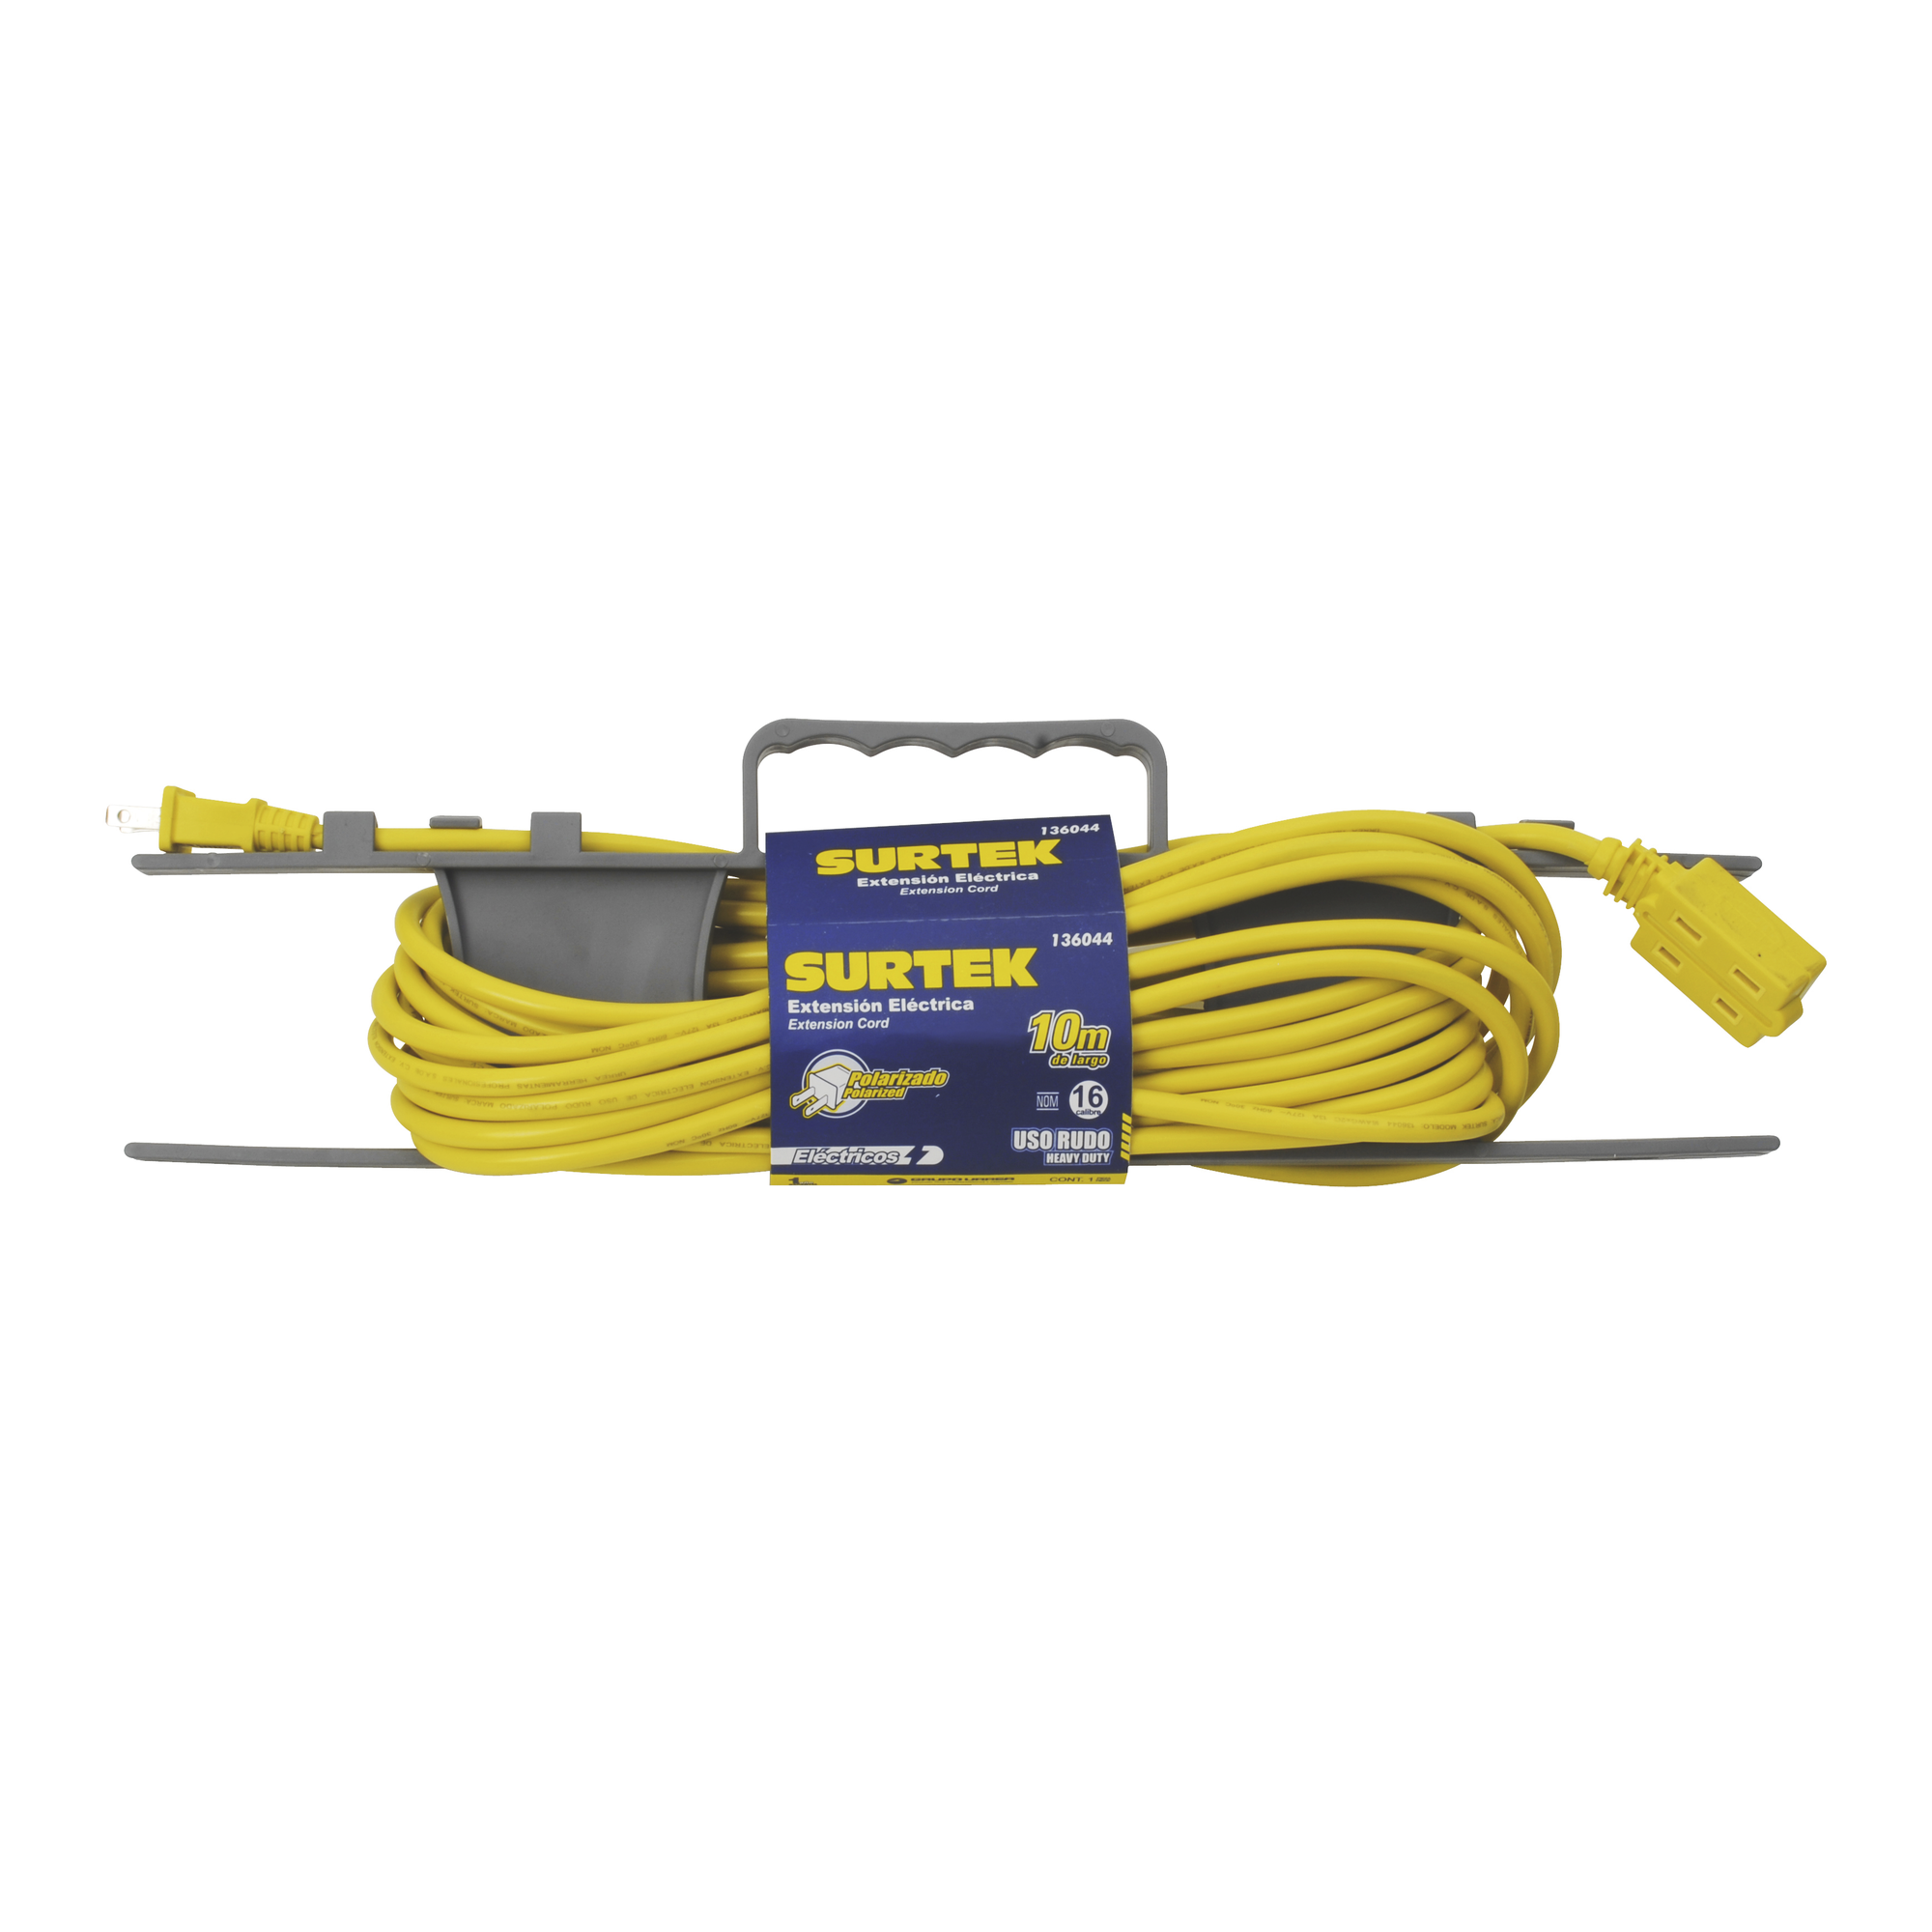 Extension electrica uso rudo 127vca l-n 2m 3 tomas 10A max